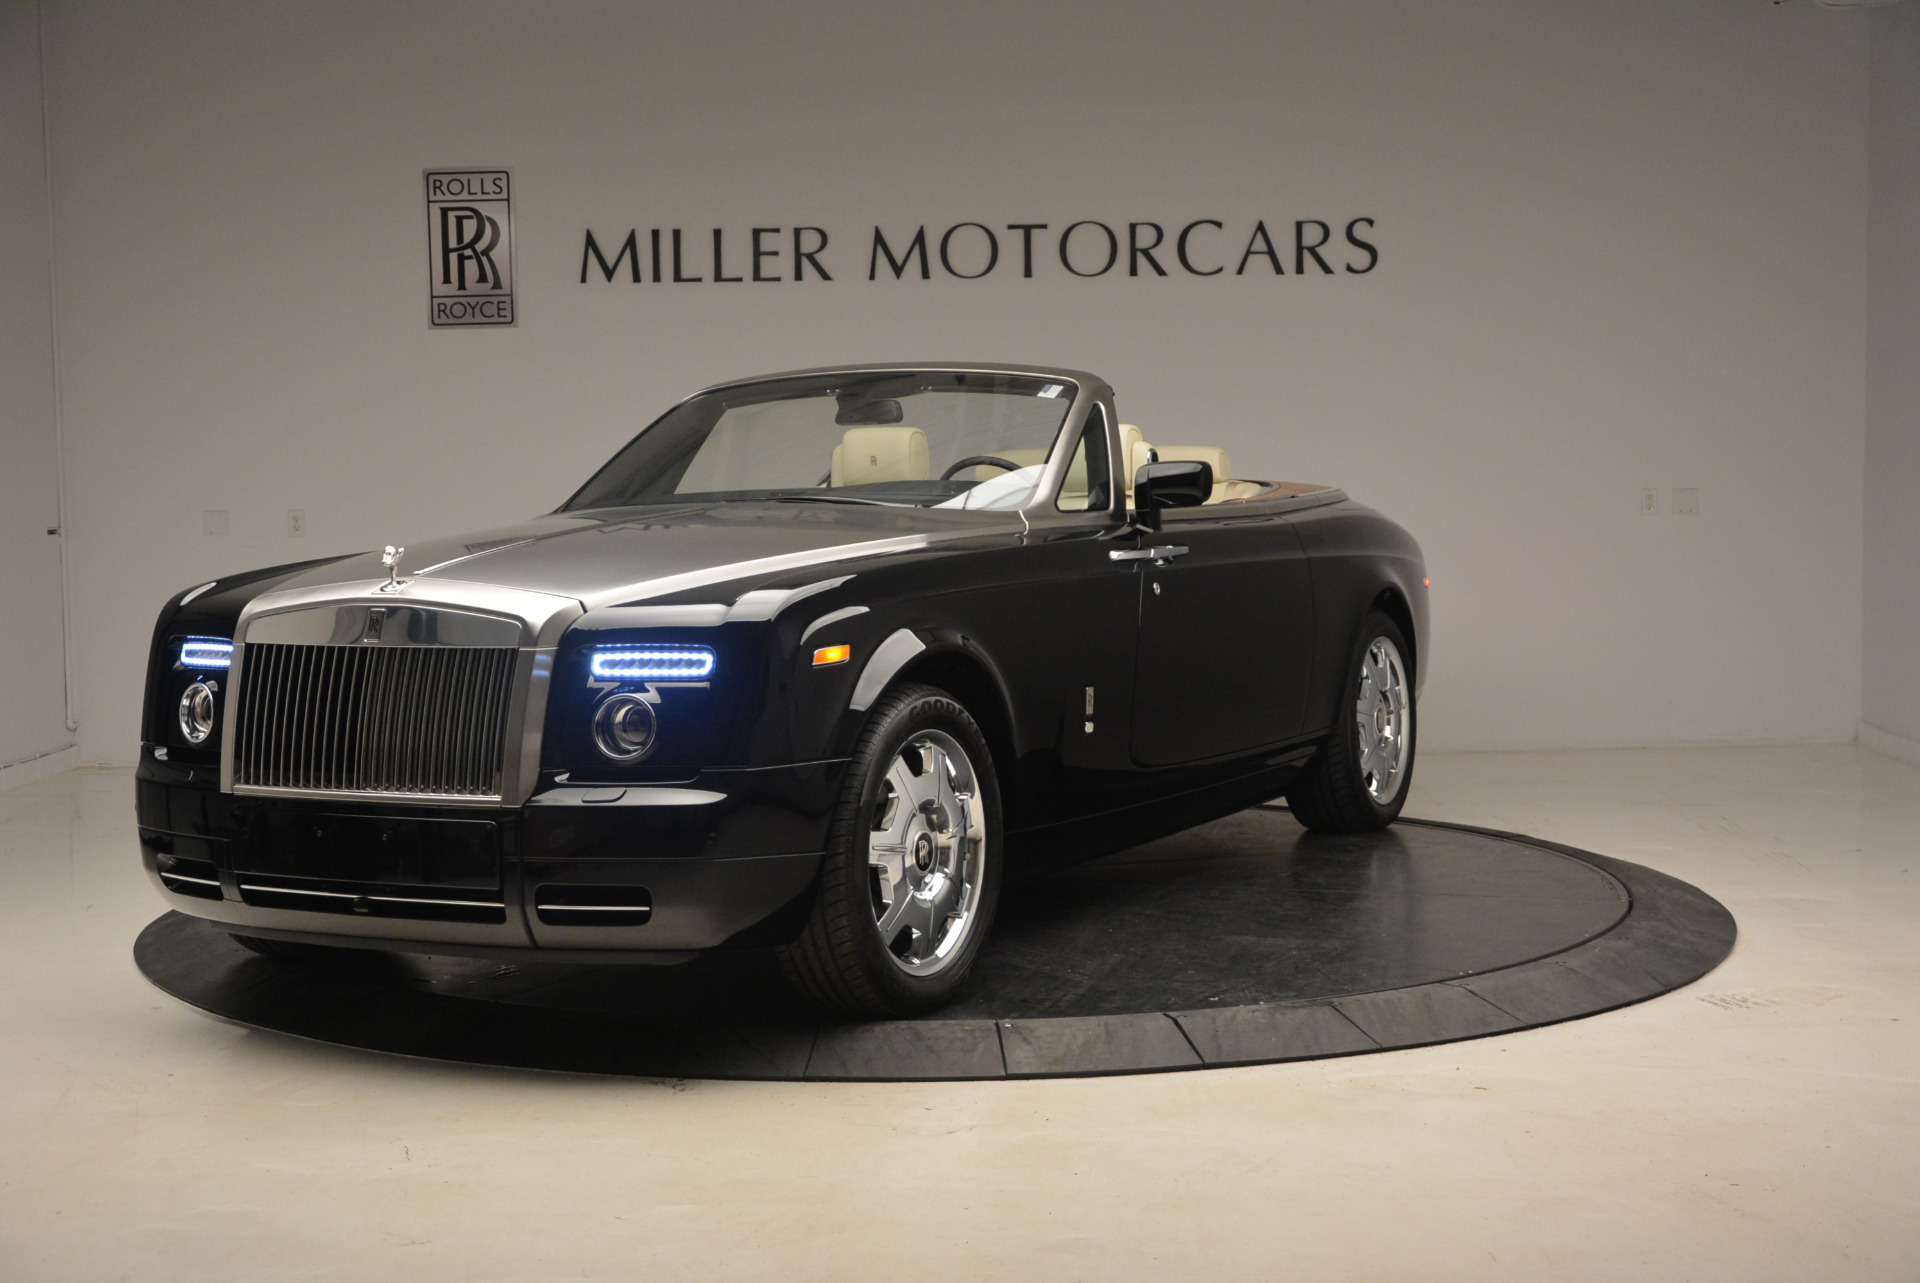 Used 2009 Rolls-Royce Phantom Drophead Coupe for sale Sold at McLaren Greenwich in Greenwich CT 06830 1